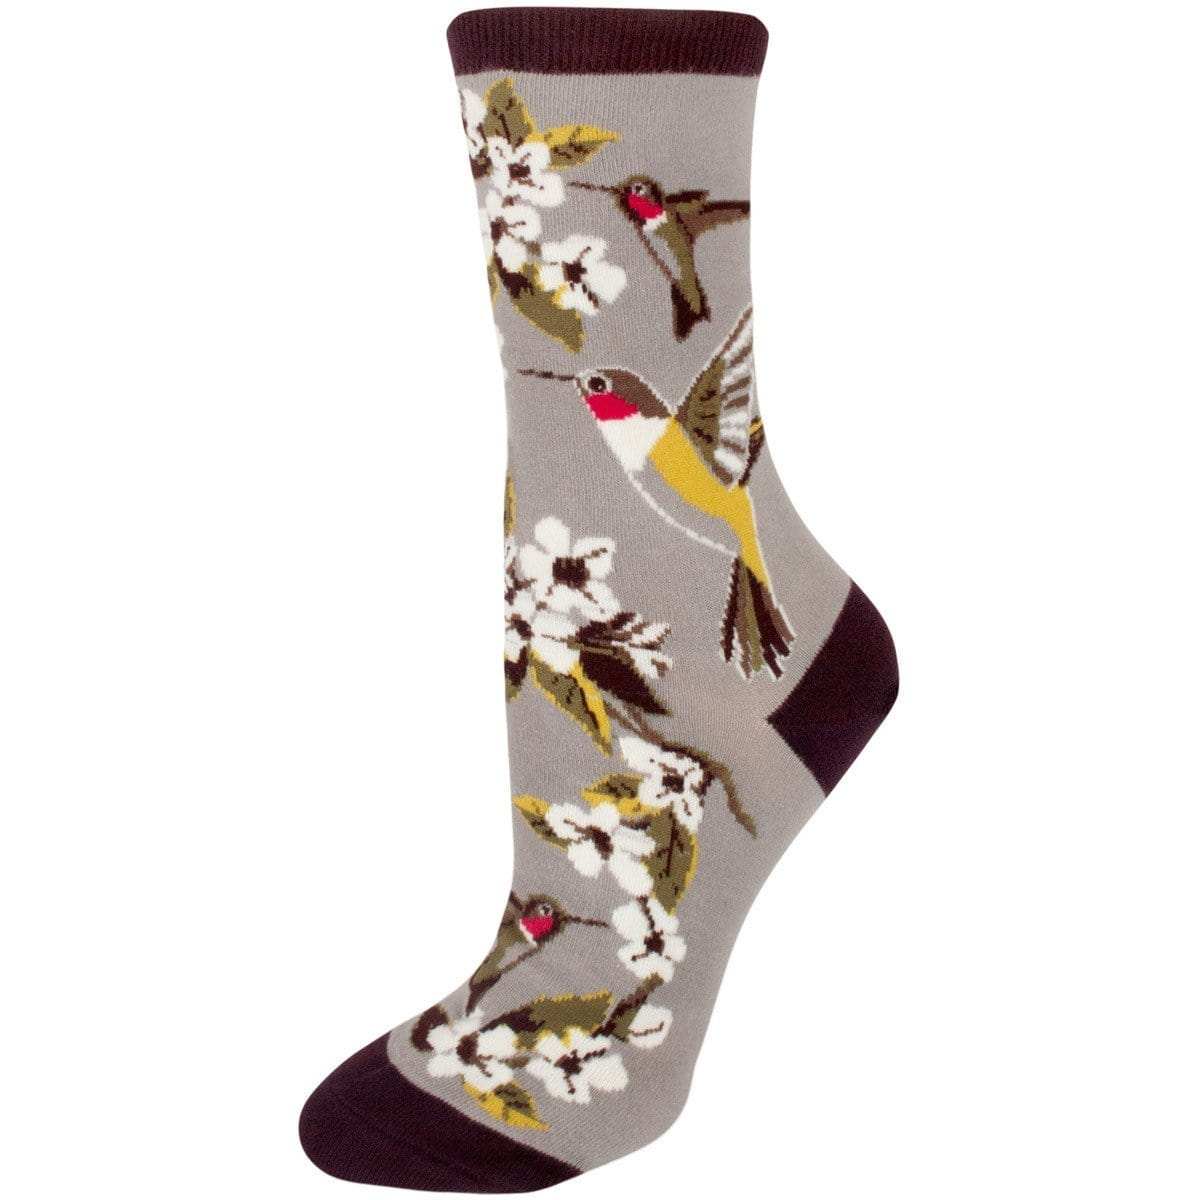 Hummingbird Garden Socks Women's Crew Sock gray